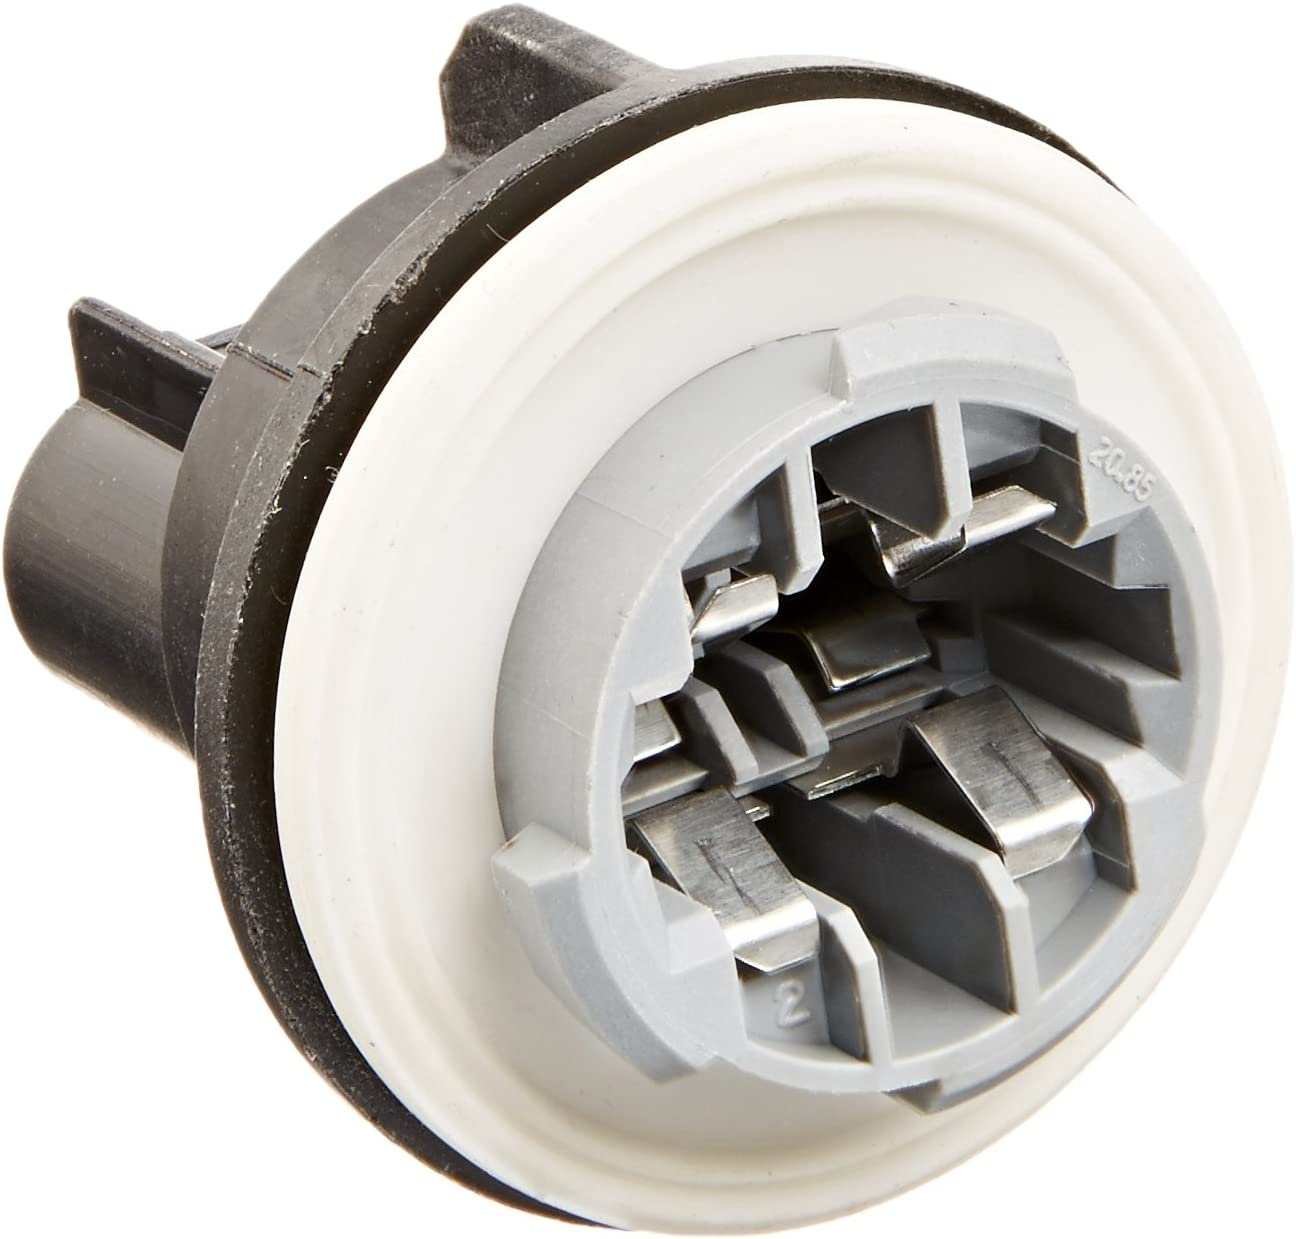 ACDelco 12335899 GM Original Equipment Turn Signal and Parking Lamp Socket